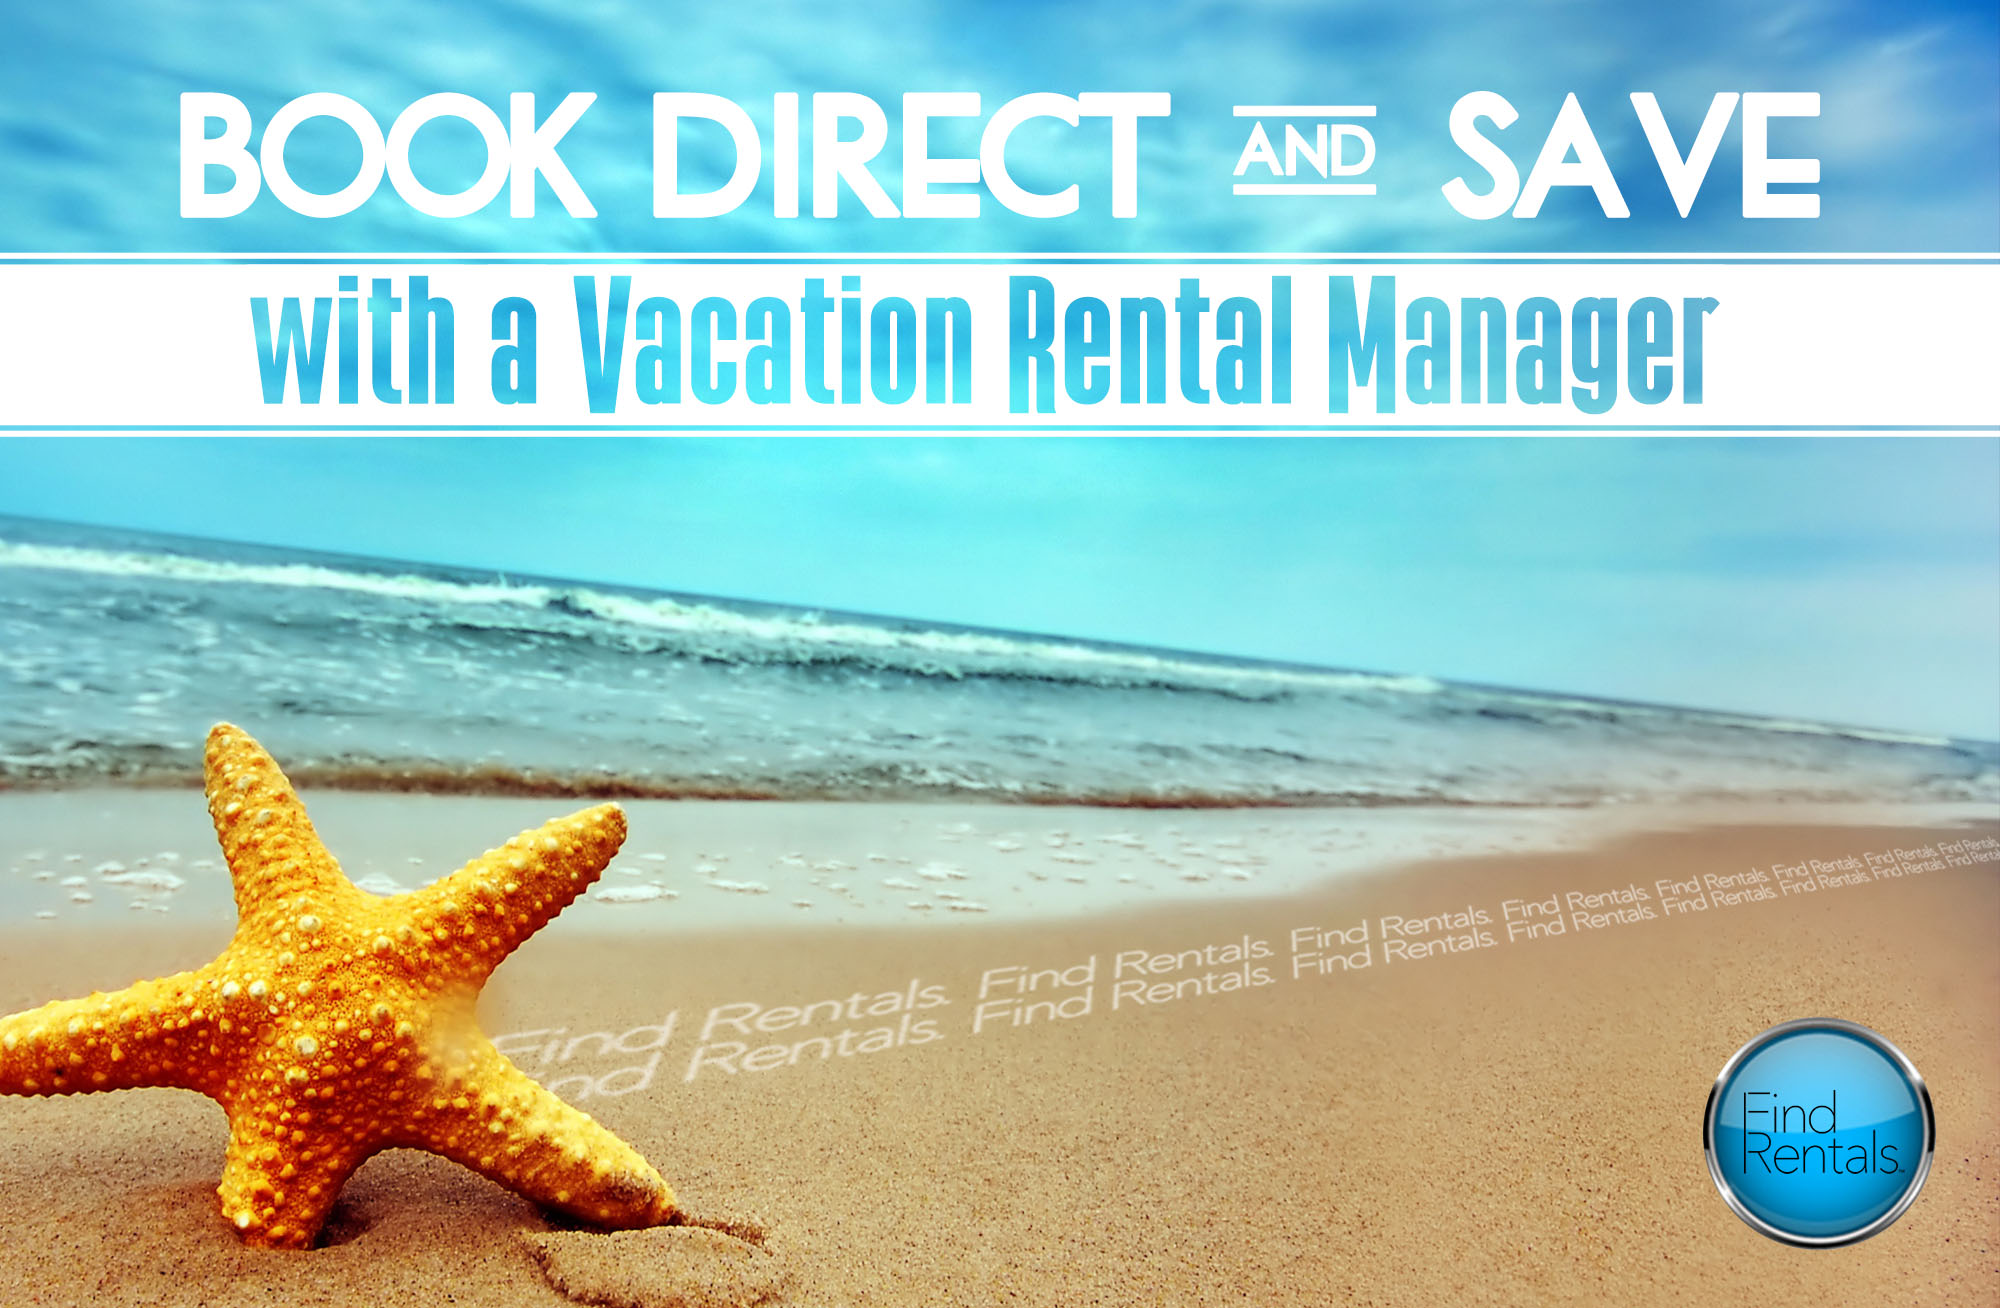 Book with a Bahamas Vacation Rental Manager